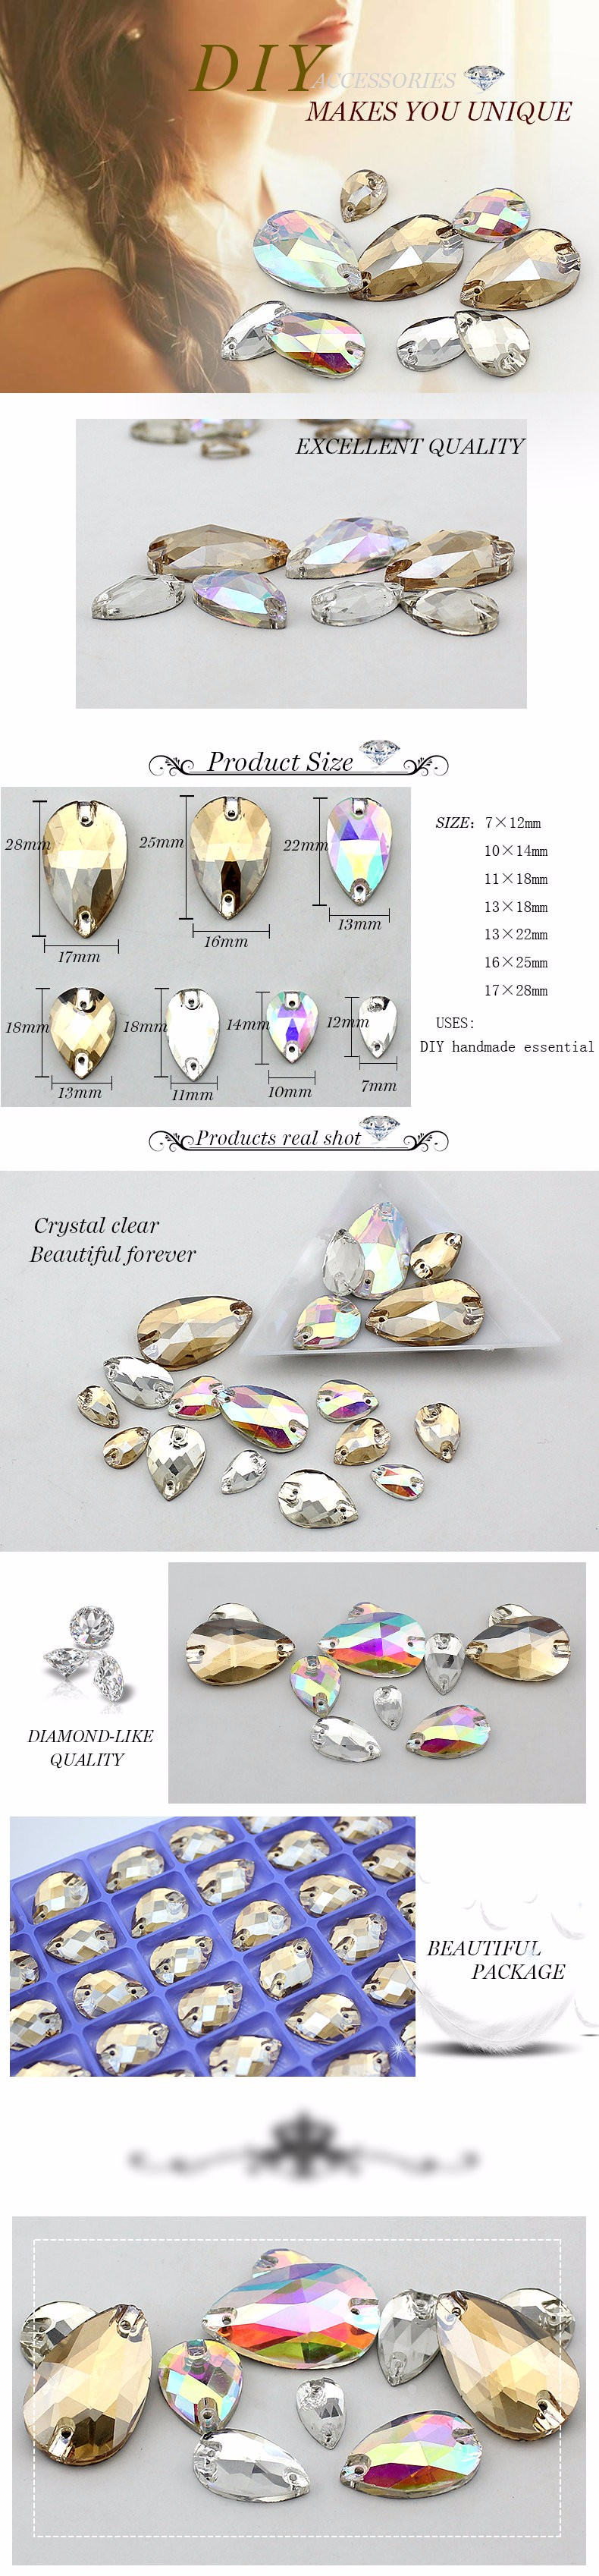 12-28mm-Sew-On-Claw-Rhinestones-Glass-Crystal-Sewing-Stones-Clear-AB-For-Wedding-Dress-DecorationFor-32647545407